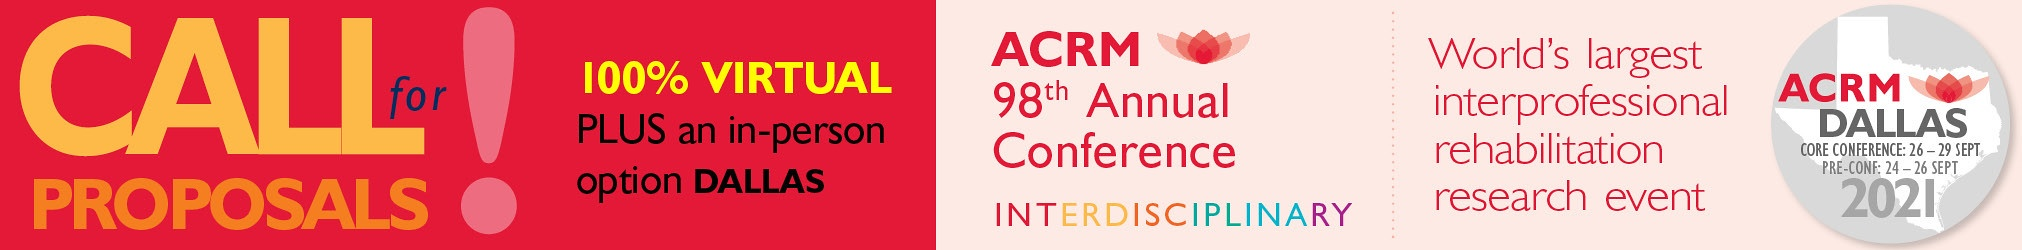 ACRM 2021 Call for Proposals banner